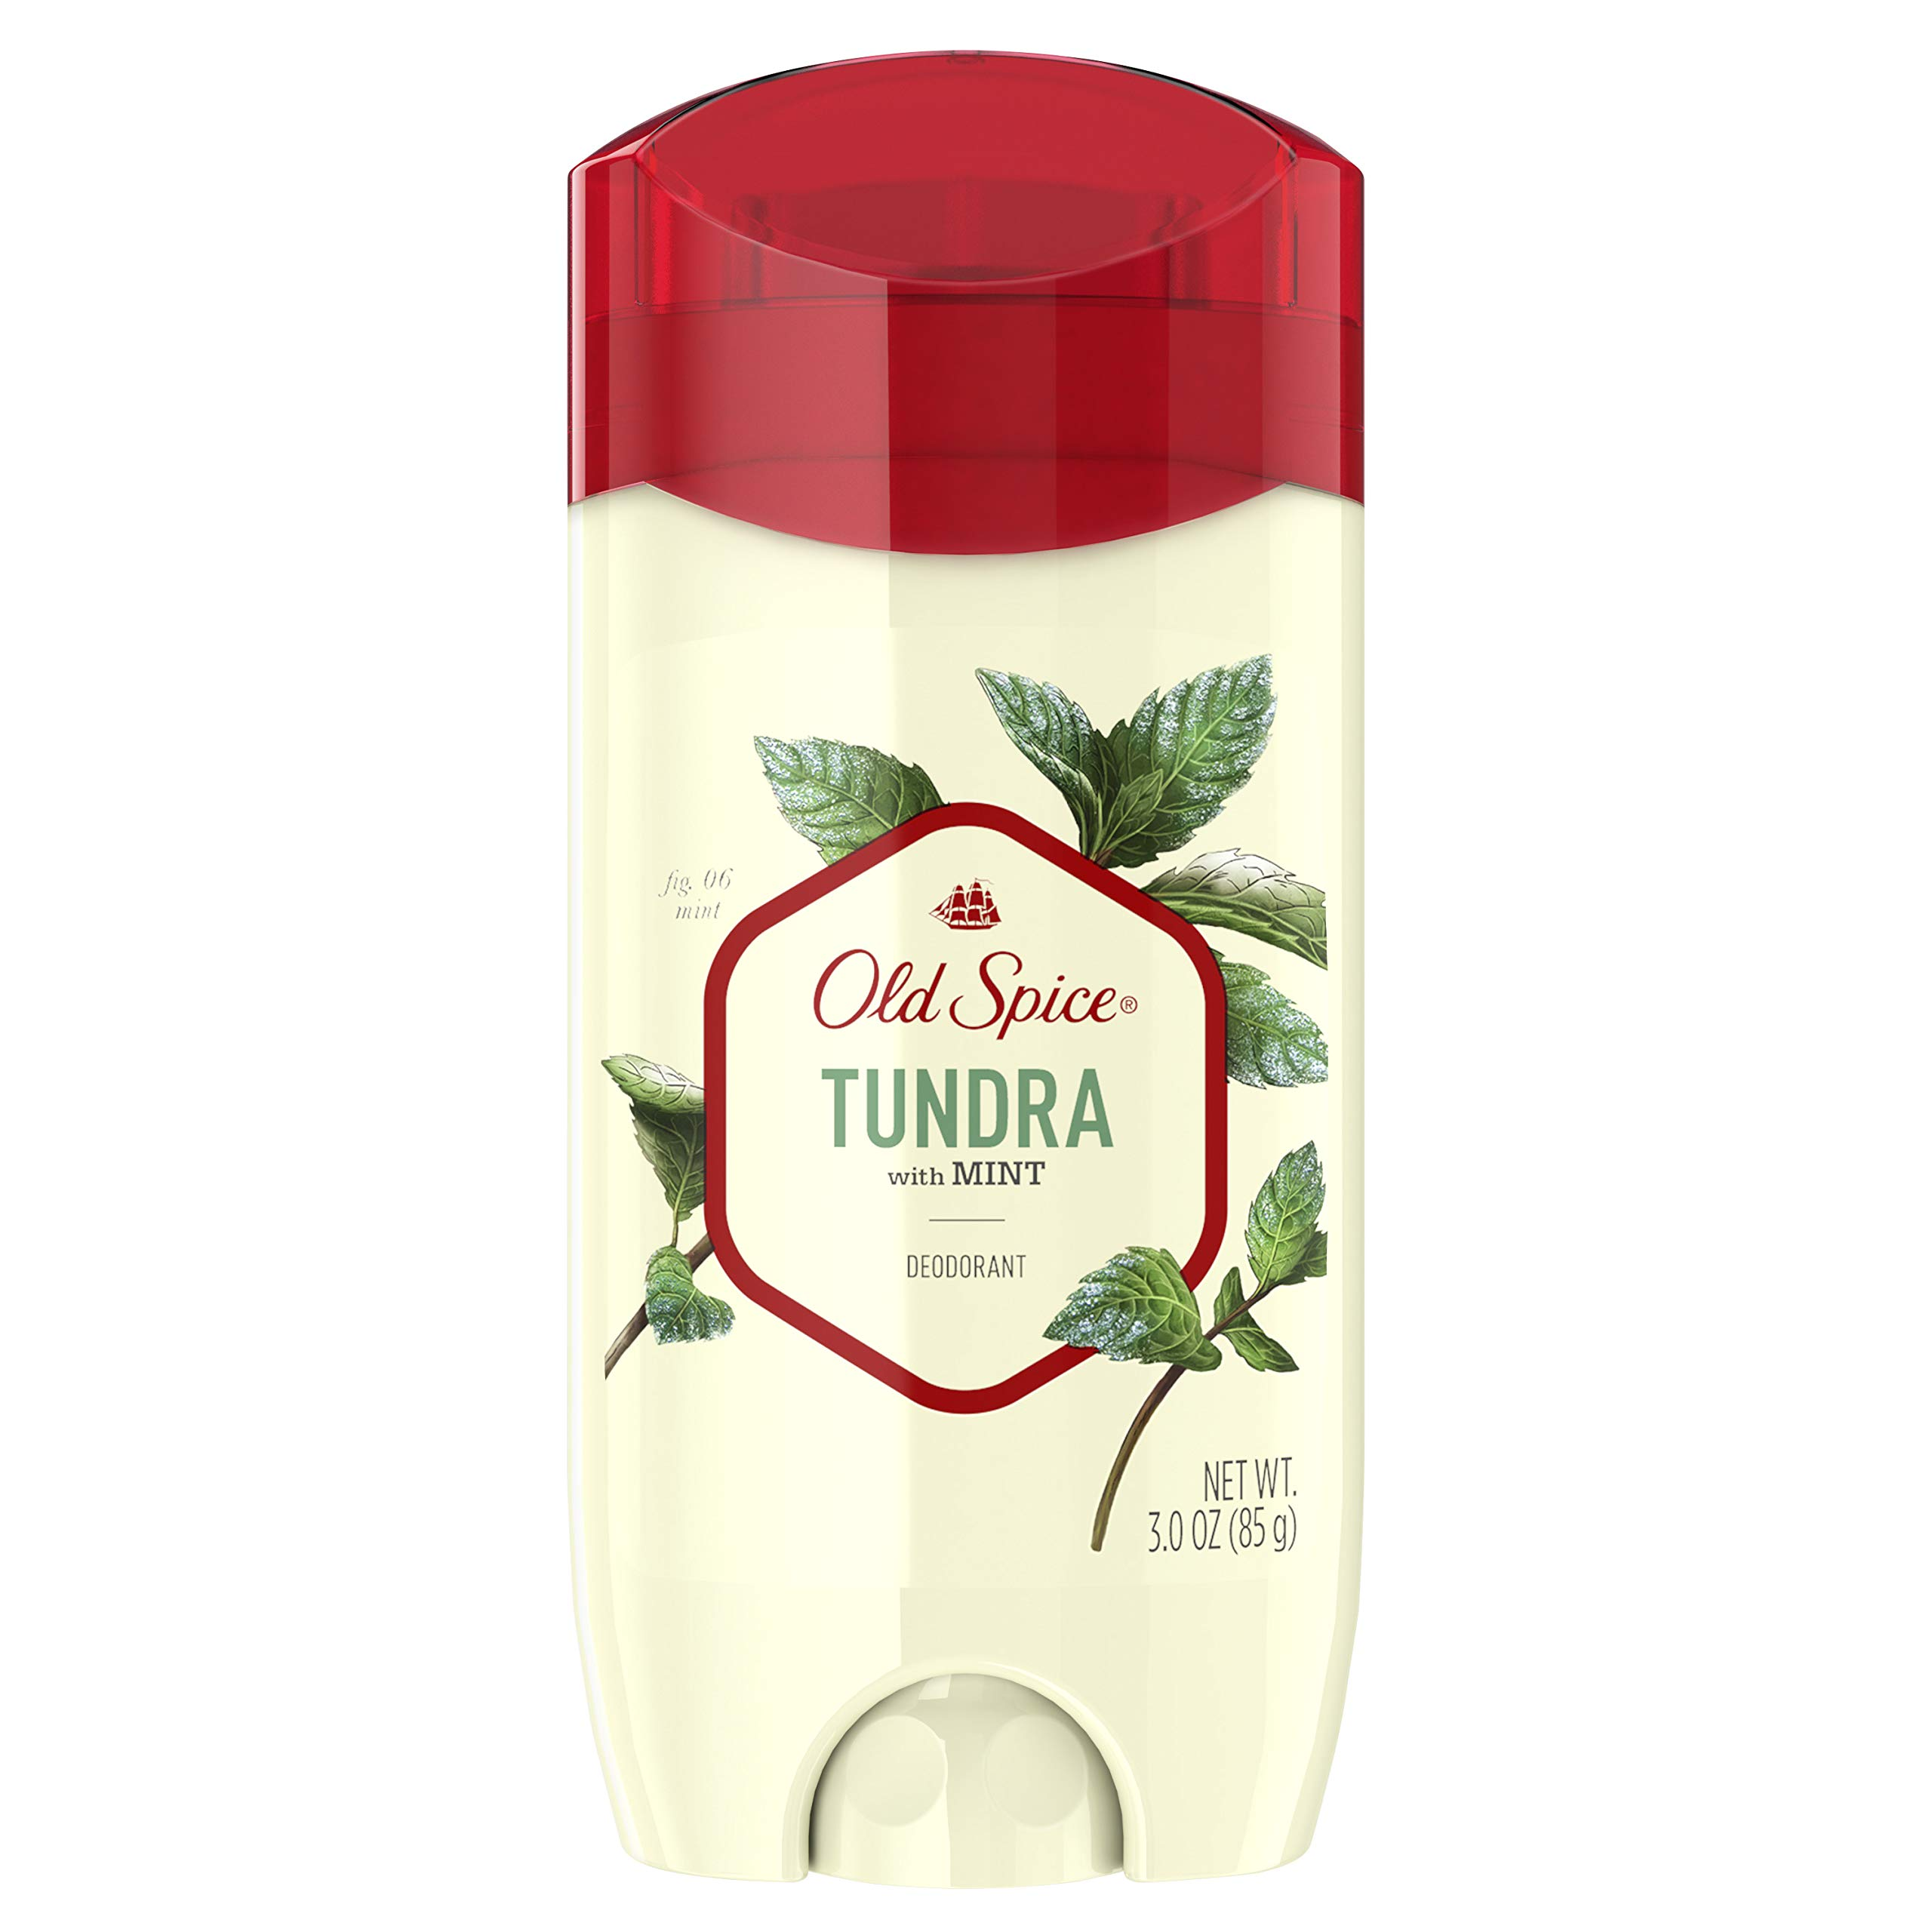 Old Spice Deodorant for Men, Tundra with Mint Scent, 3 Fluid Ounce (Pack of 12)